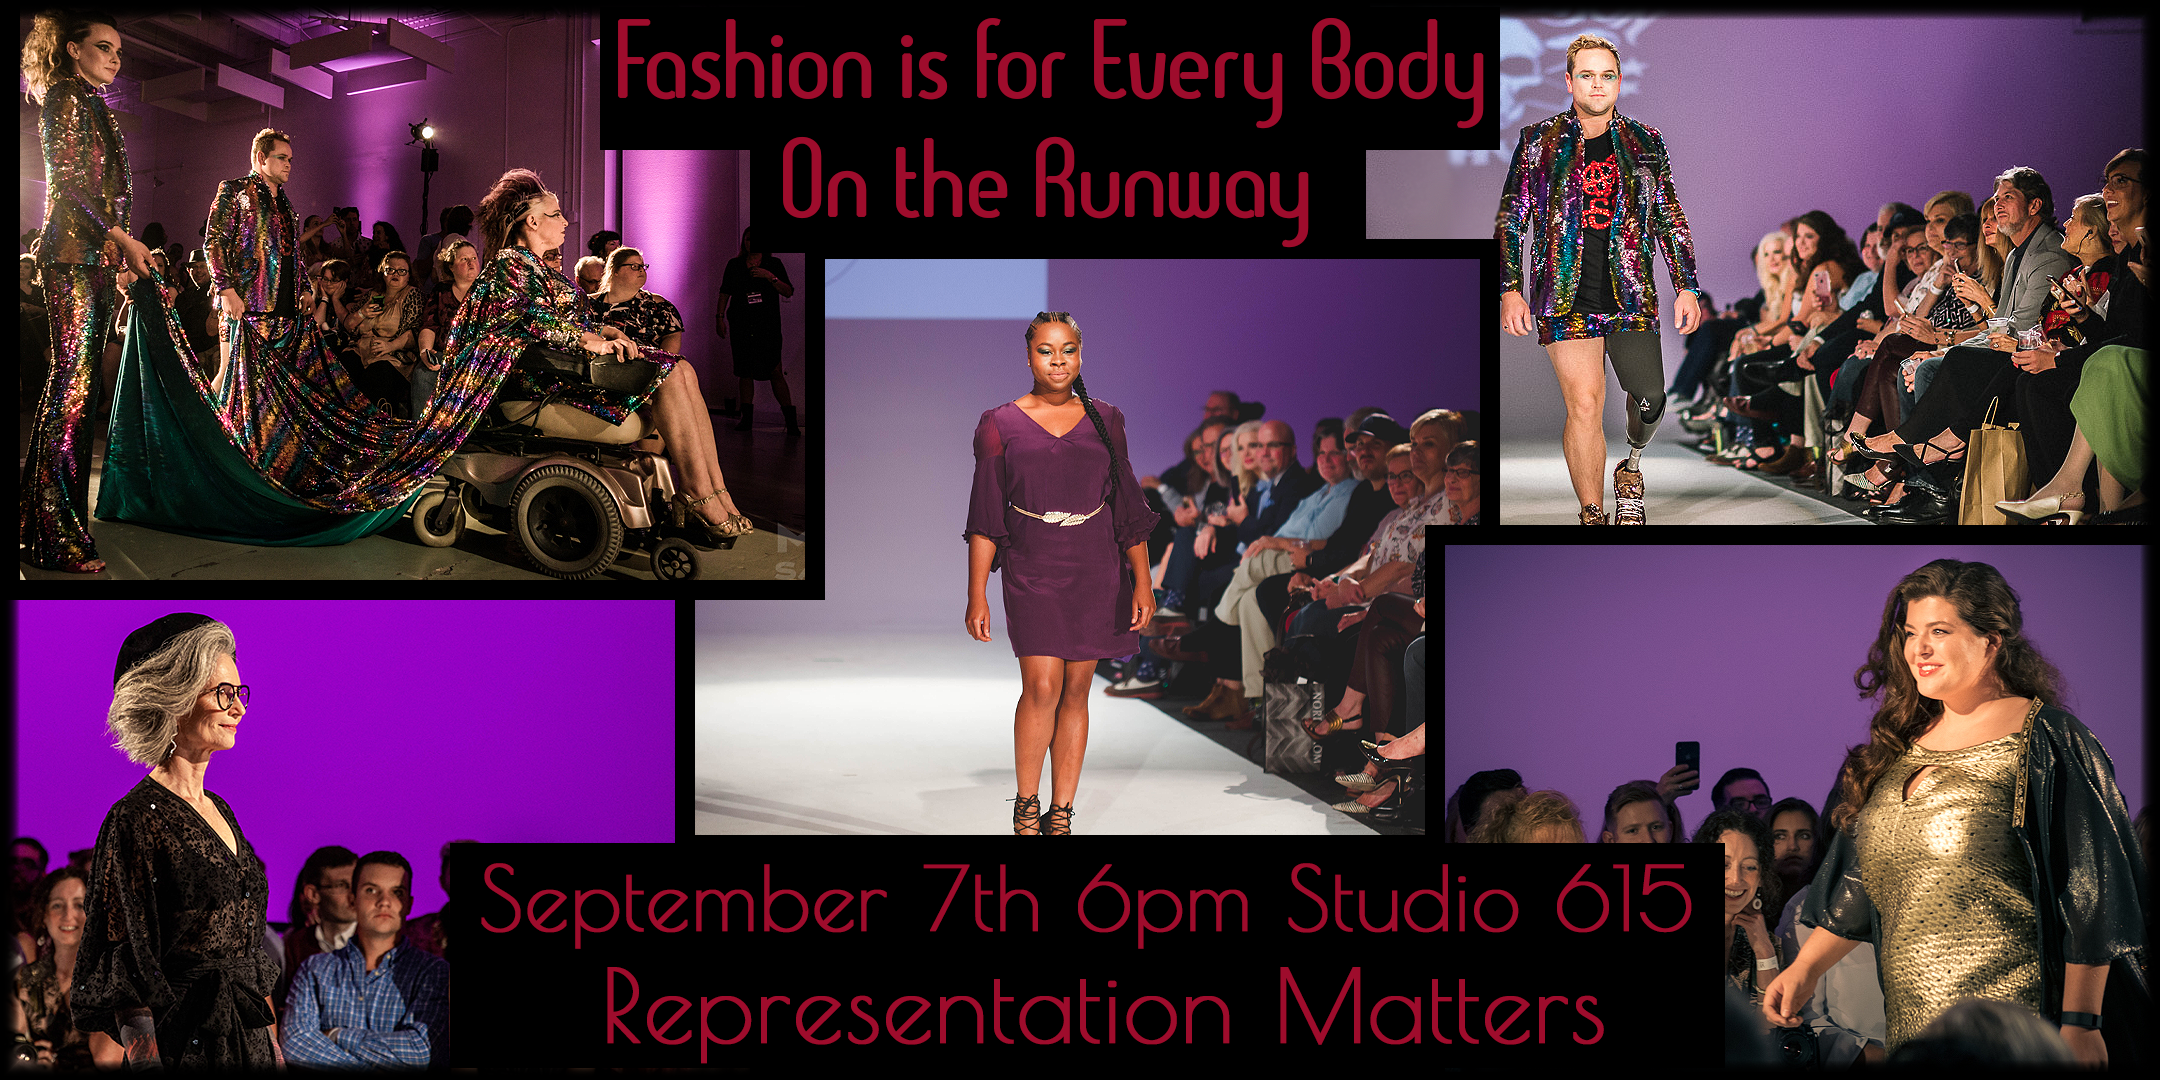 On the Runway Wall Banner 19.png